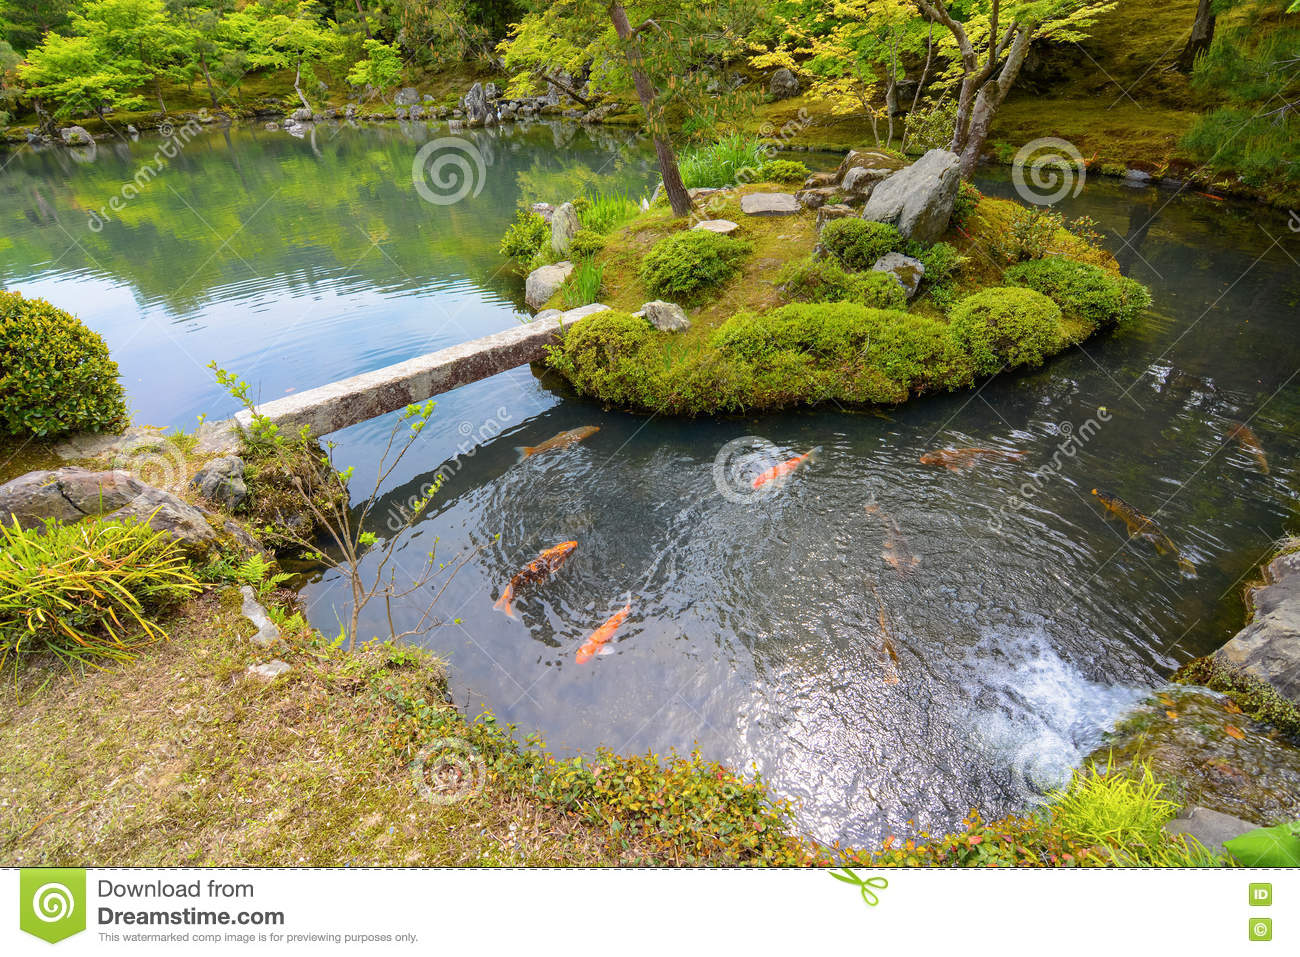 Traditional japanese pond garden with colorful orange carp for Japanese ornamental fish